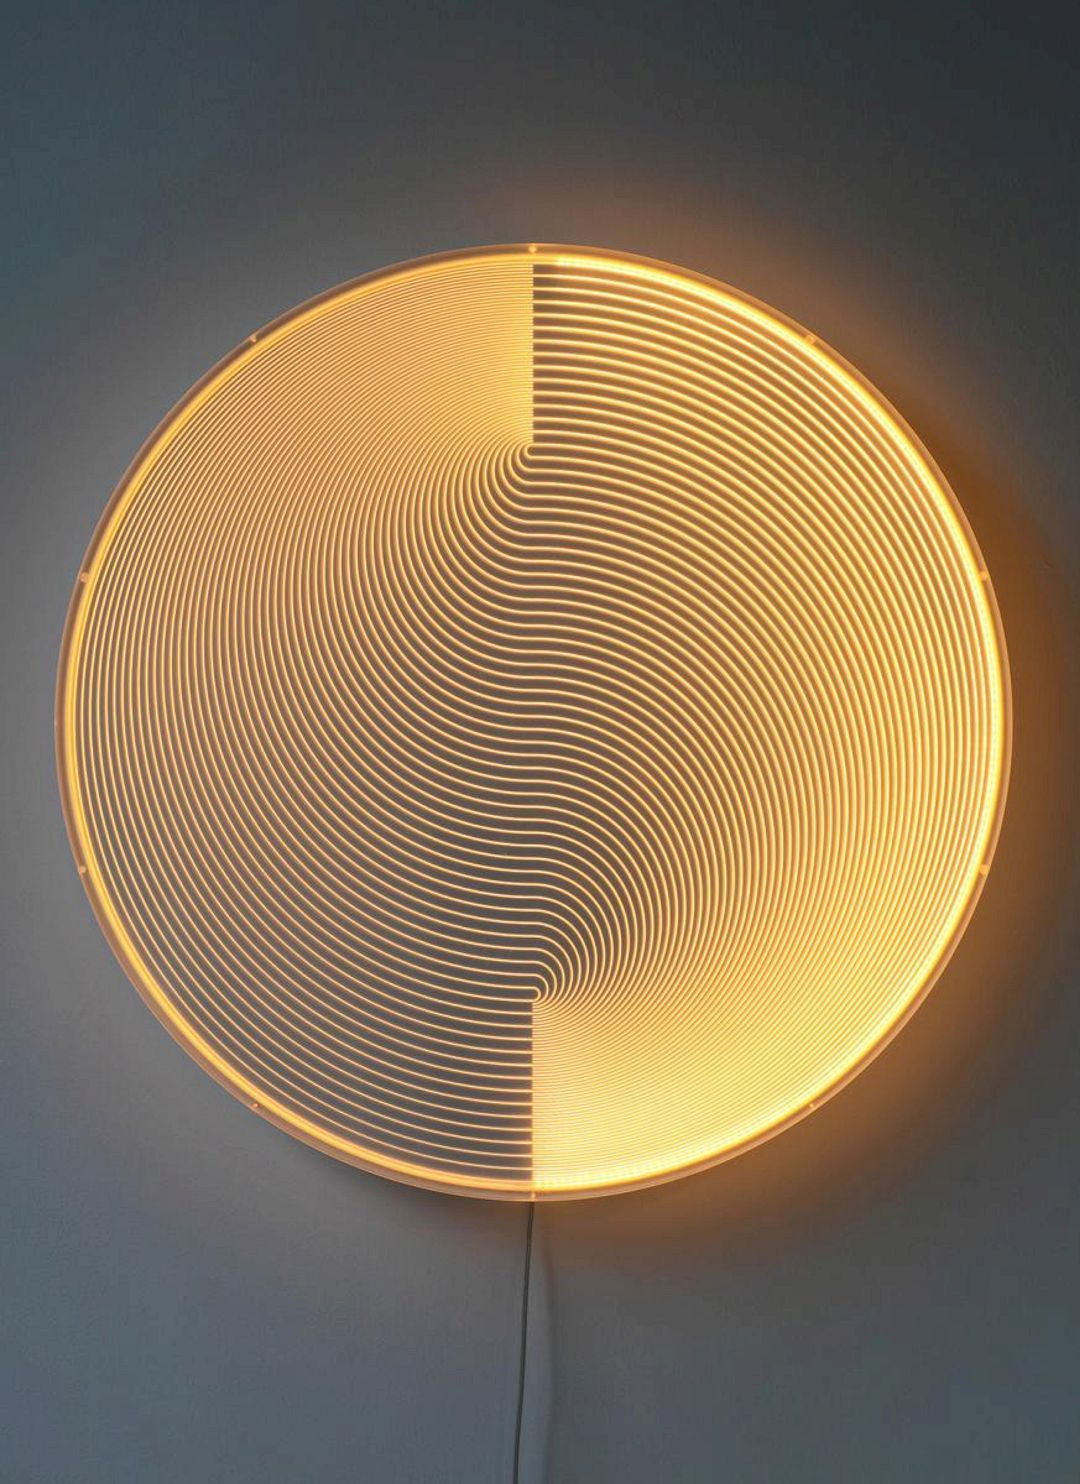 Most beautiful wall lamp designs most beautiful wall lamp designs design listicle aloadofball Choice Image